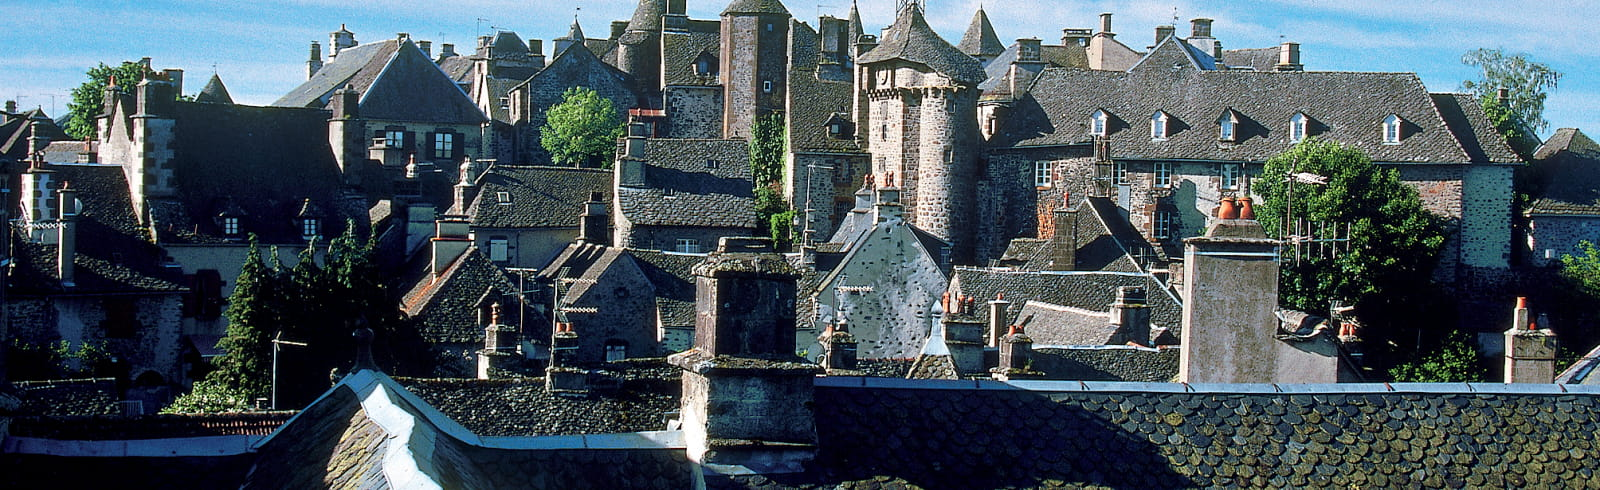 Salers village cantal